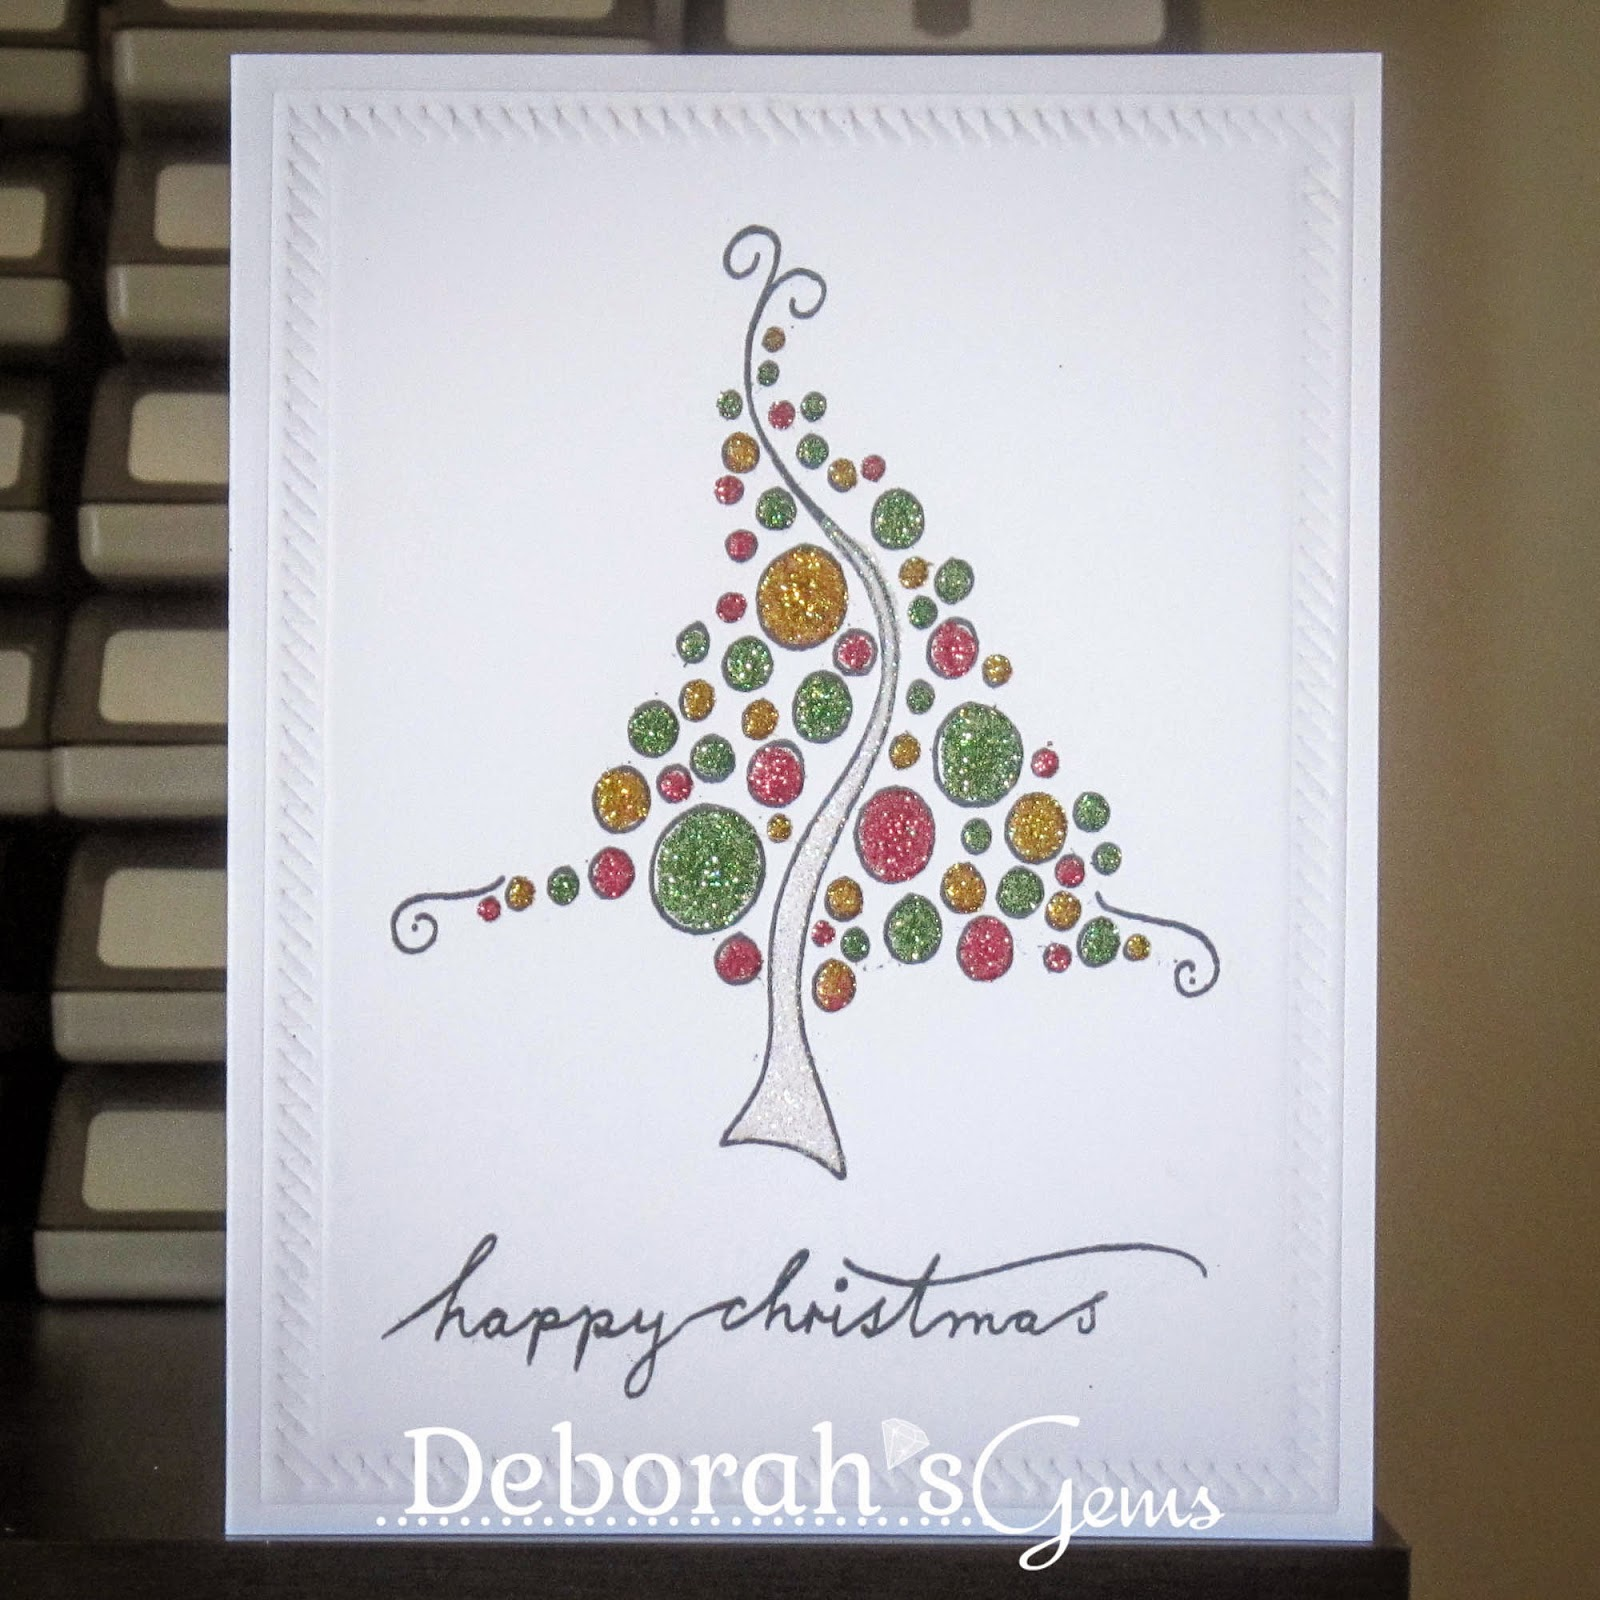 Happy Christmas sq - photo by Deborah Frings - Deborah's Gems